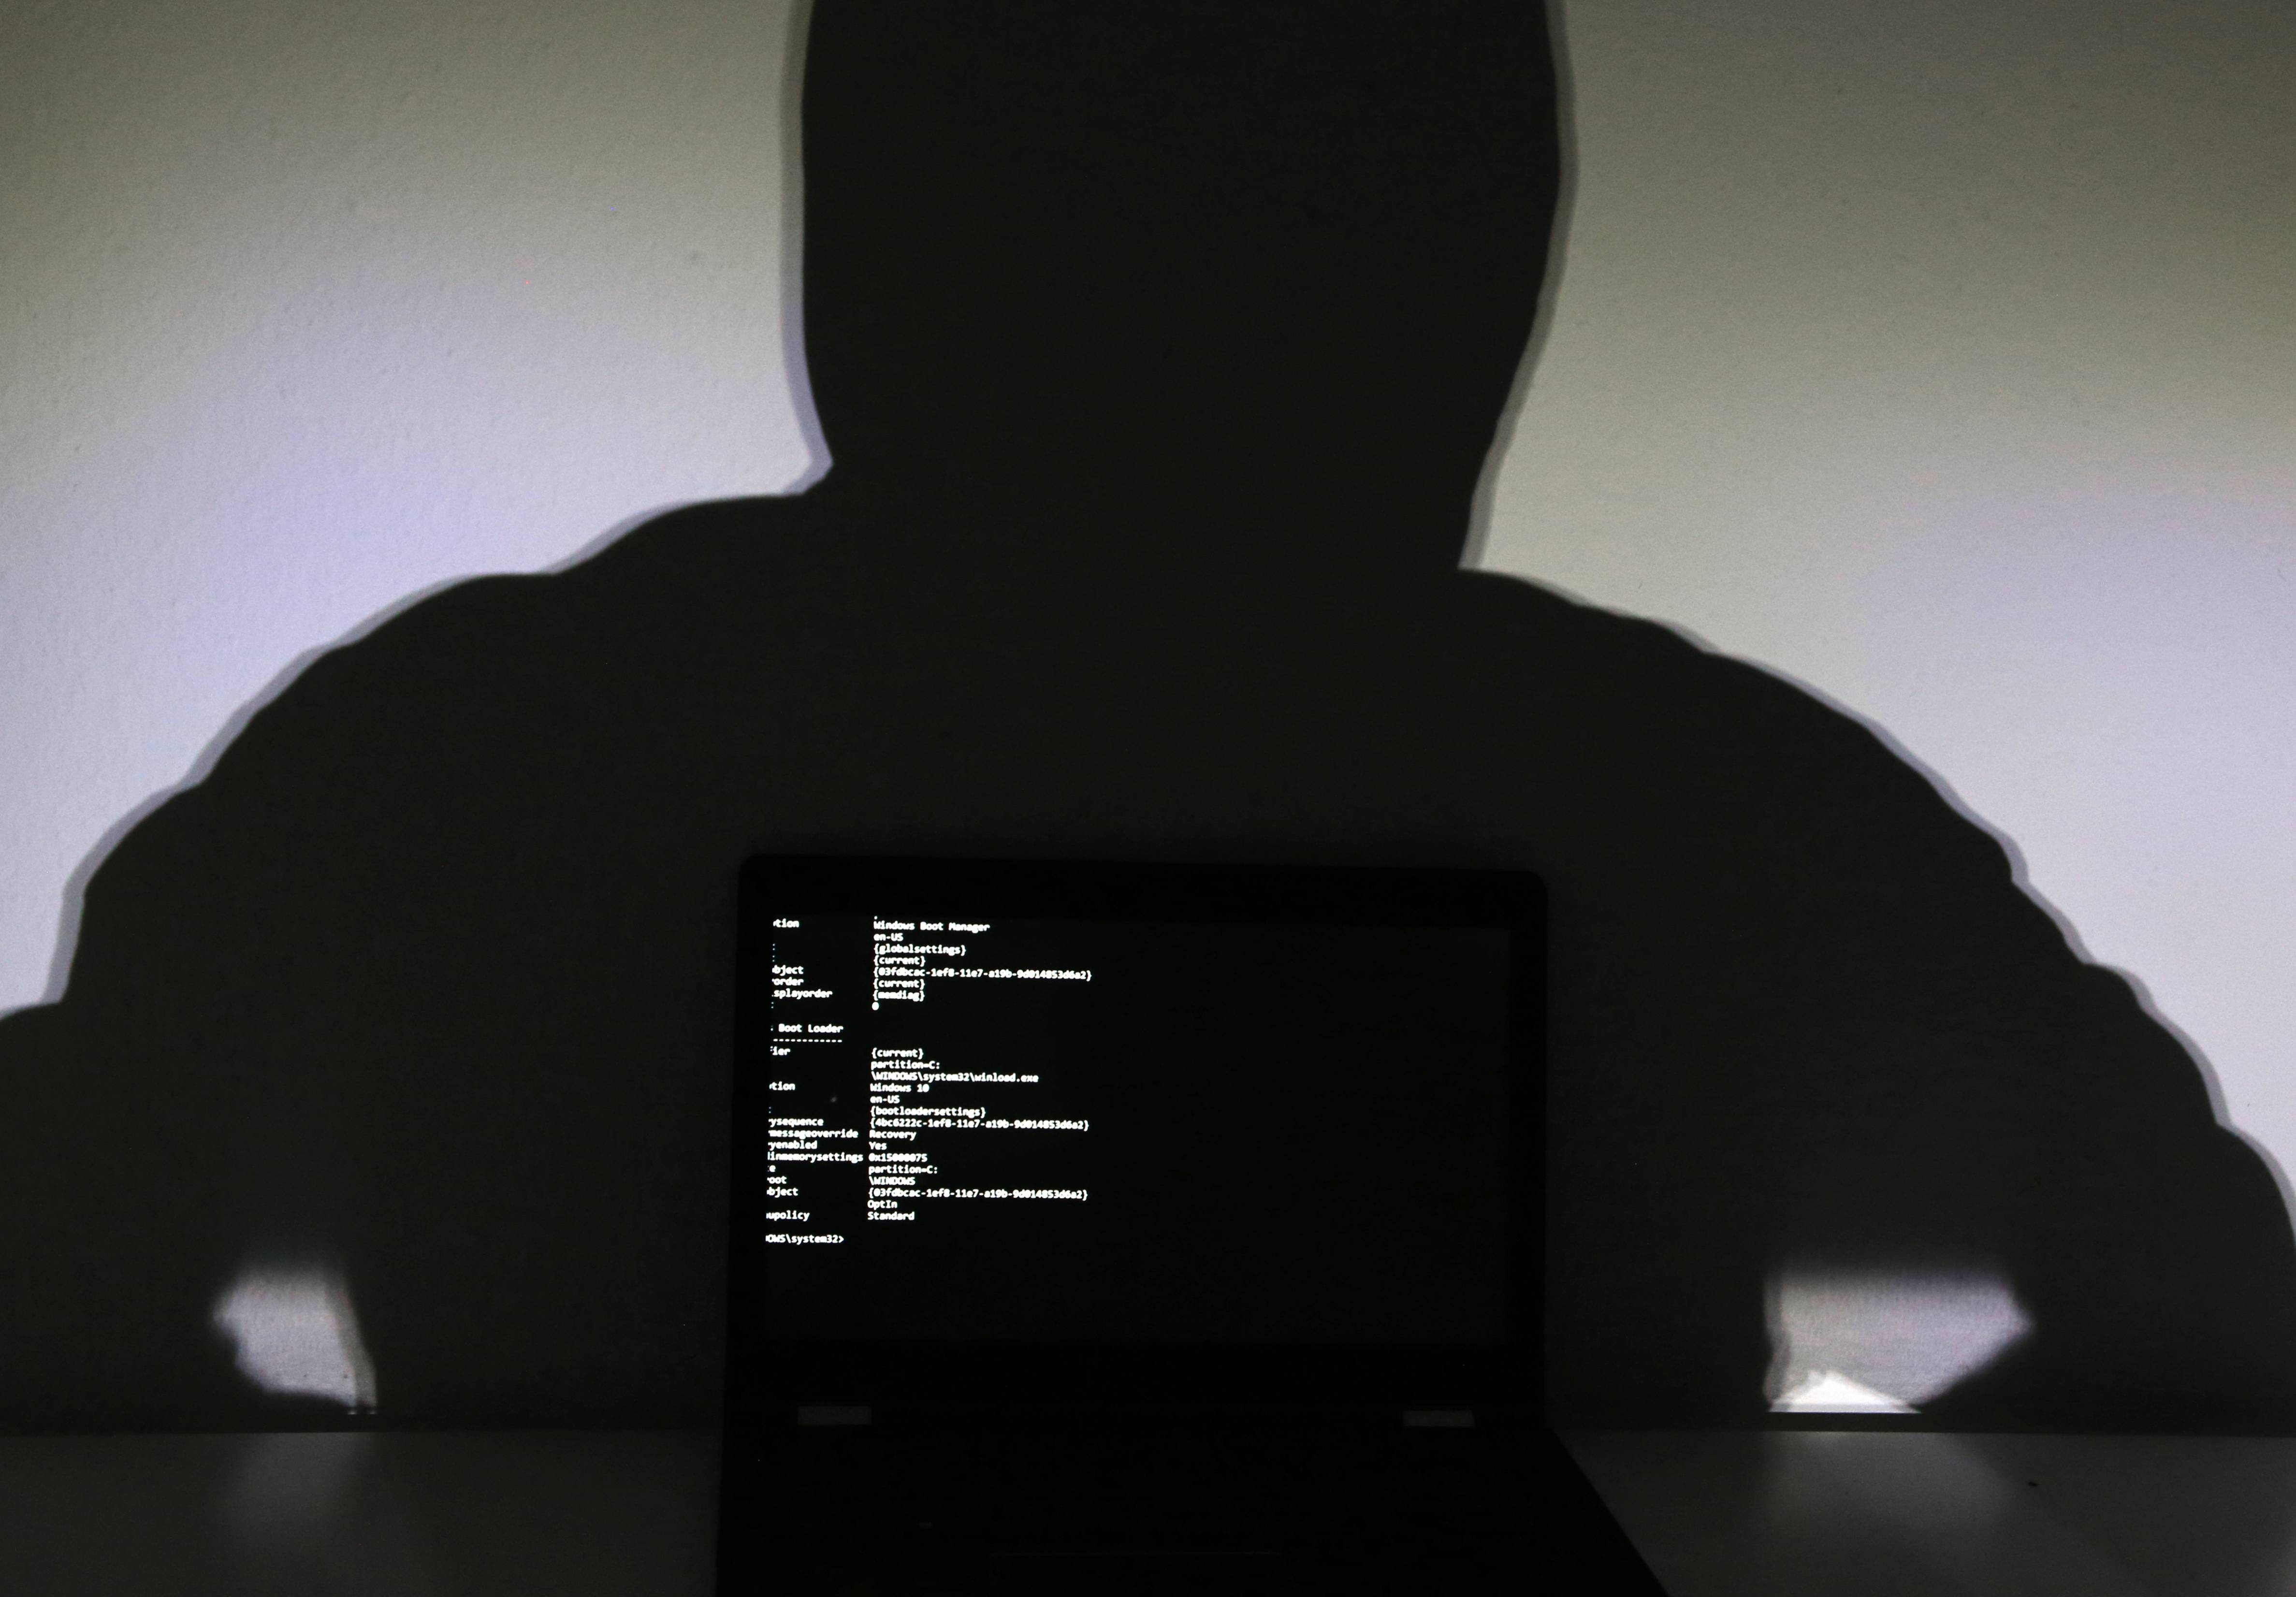 Hacker in front of the screen